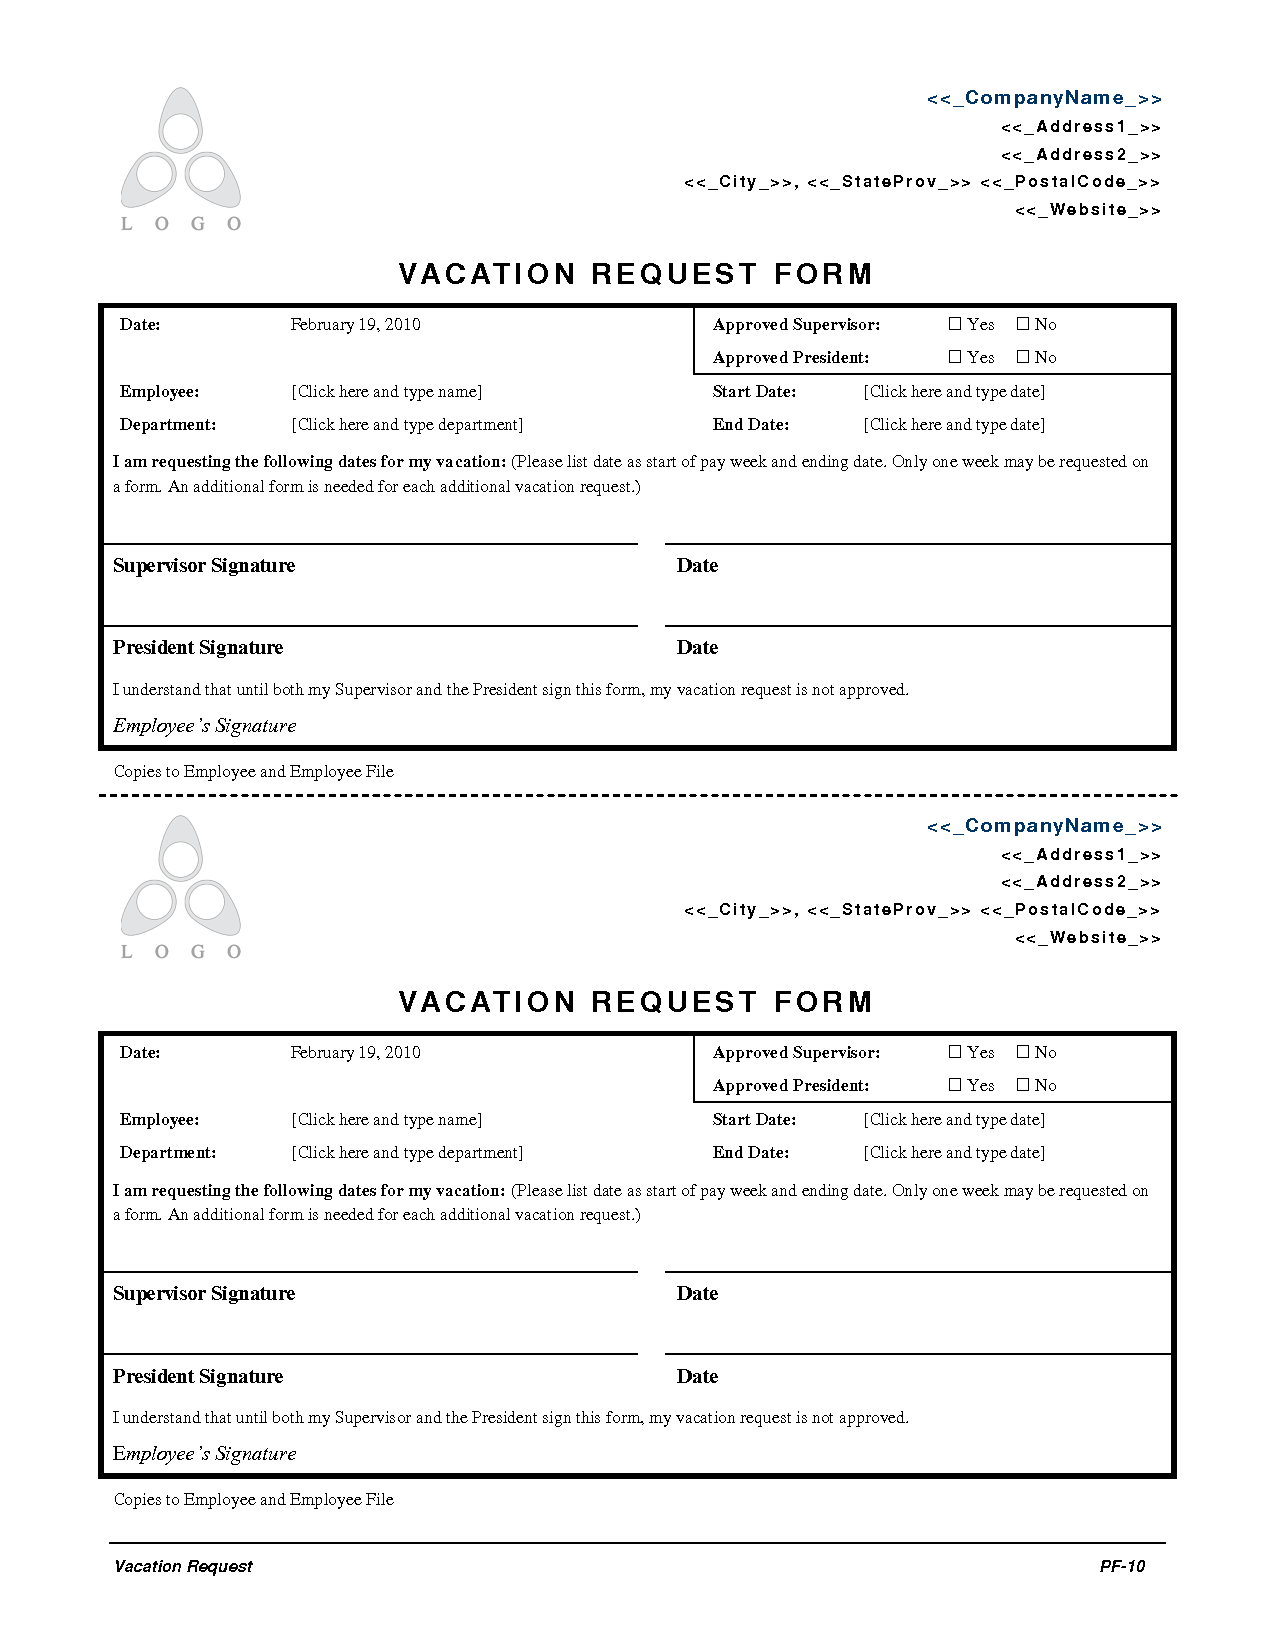 2010 Employee Vacation Request Form Employee Forms